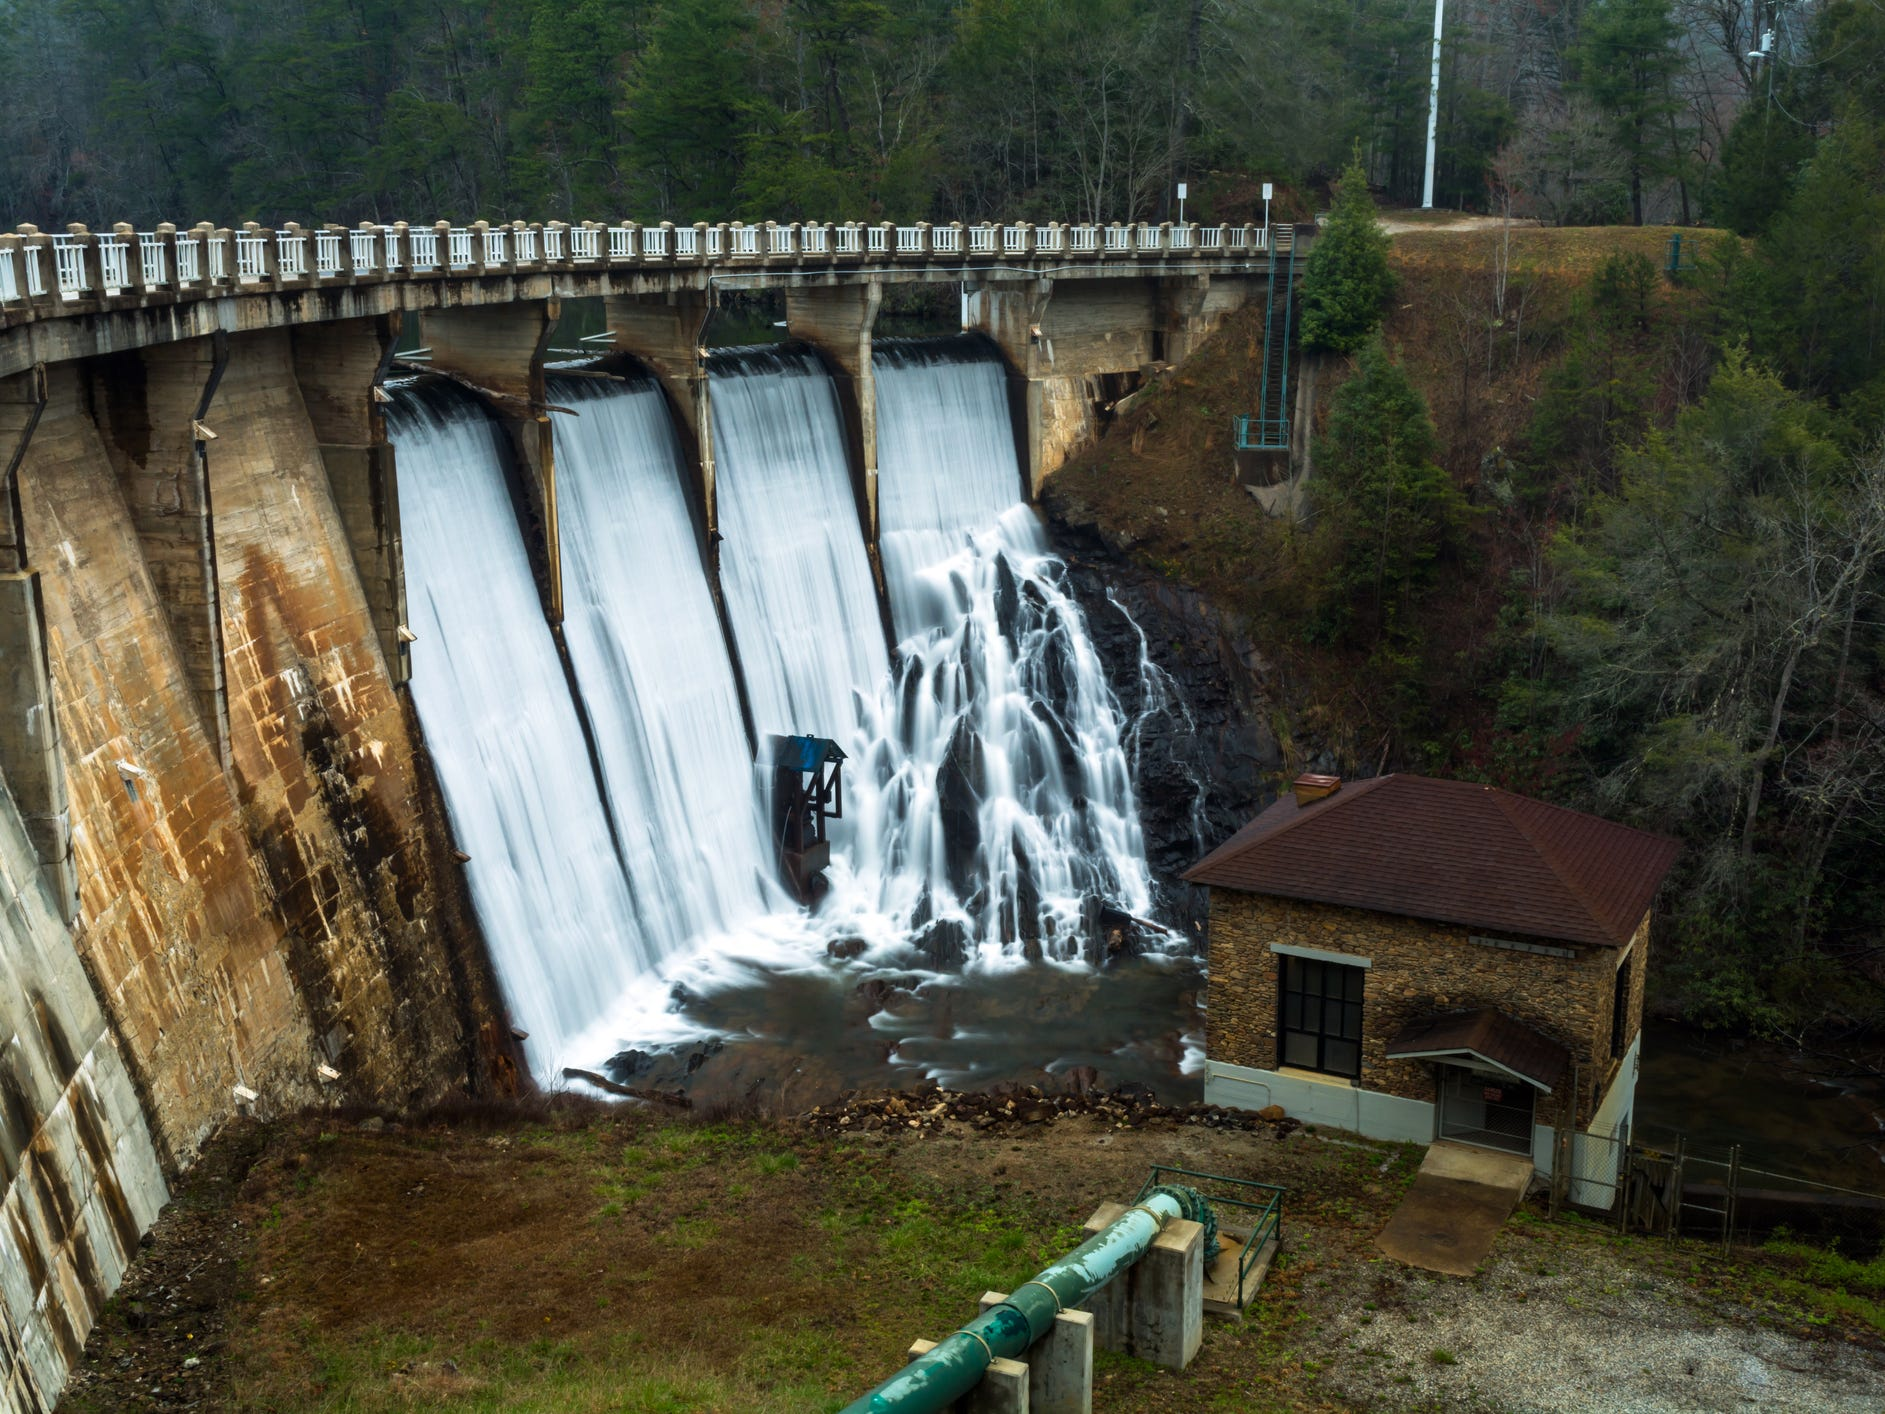 Tahoma Dam in North Carolina.